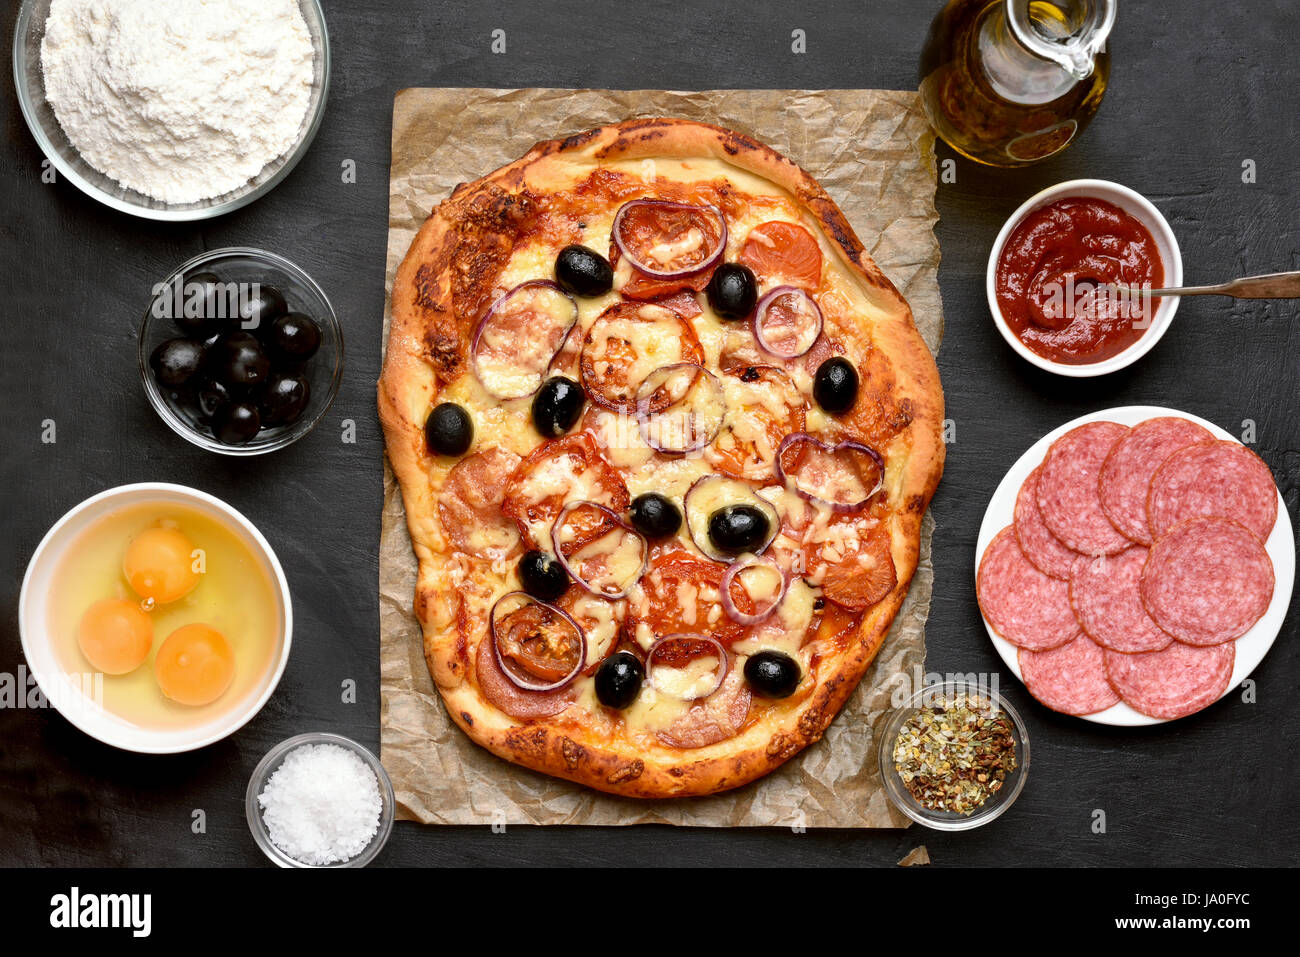 Pizza and ingredients on dark background, top view - Stock Image